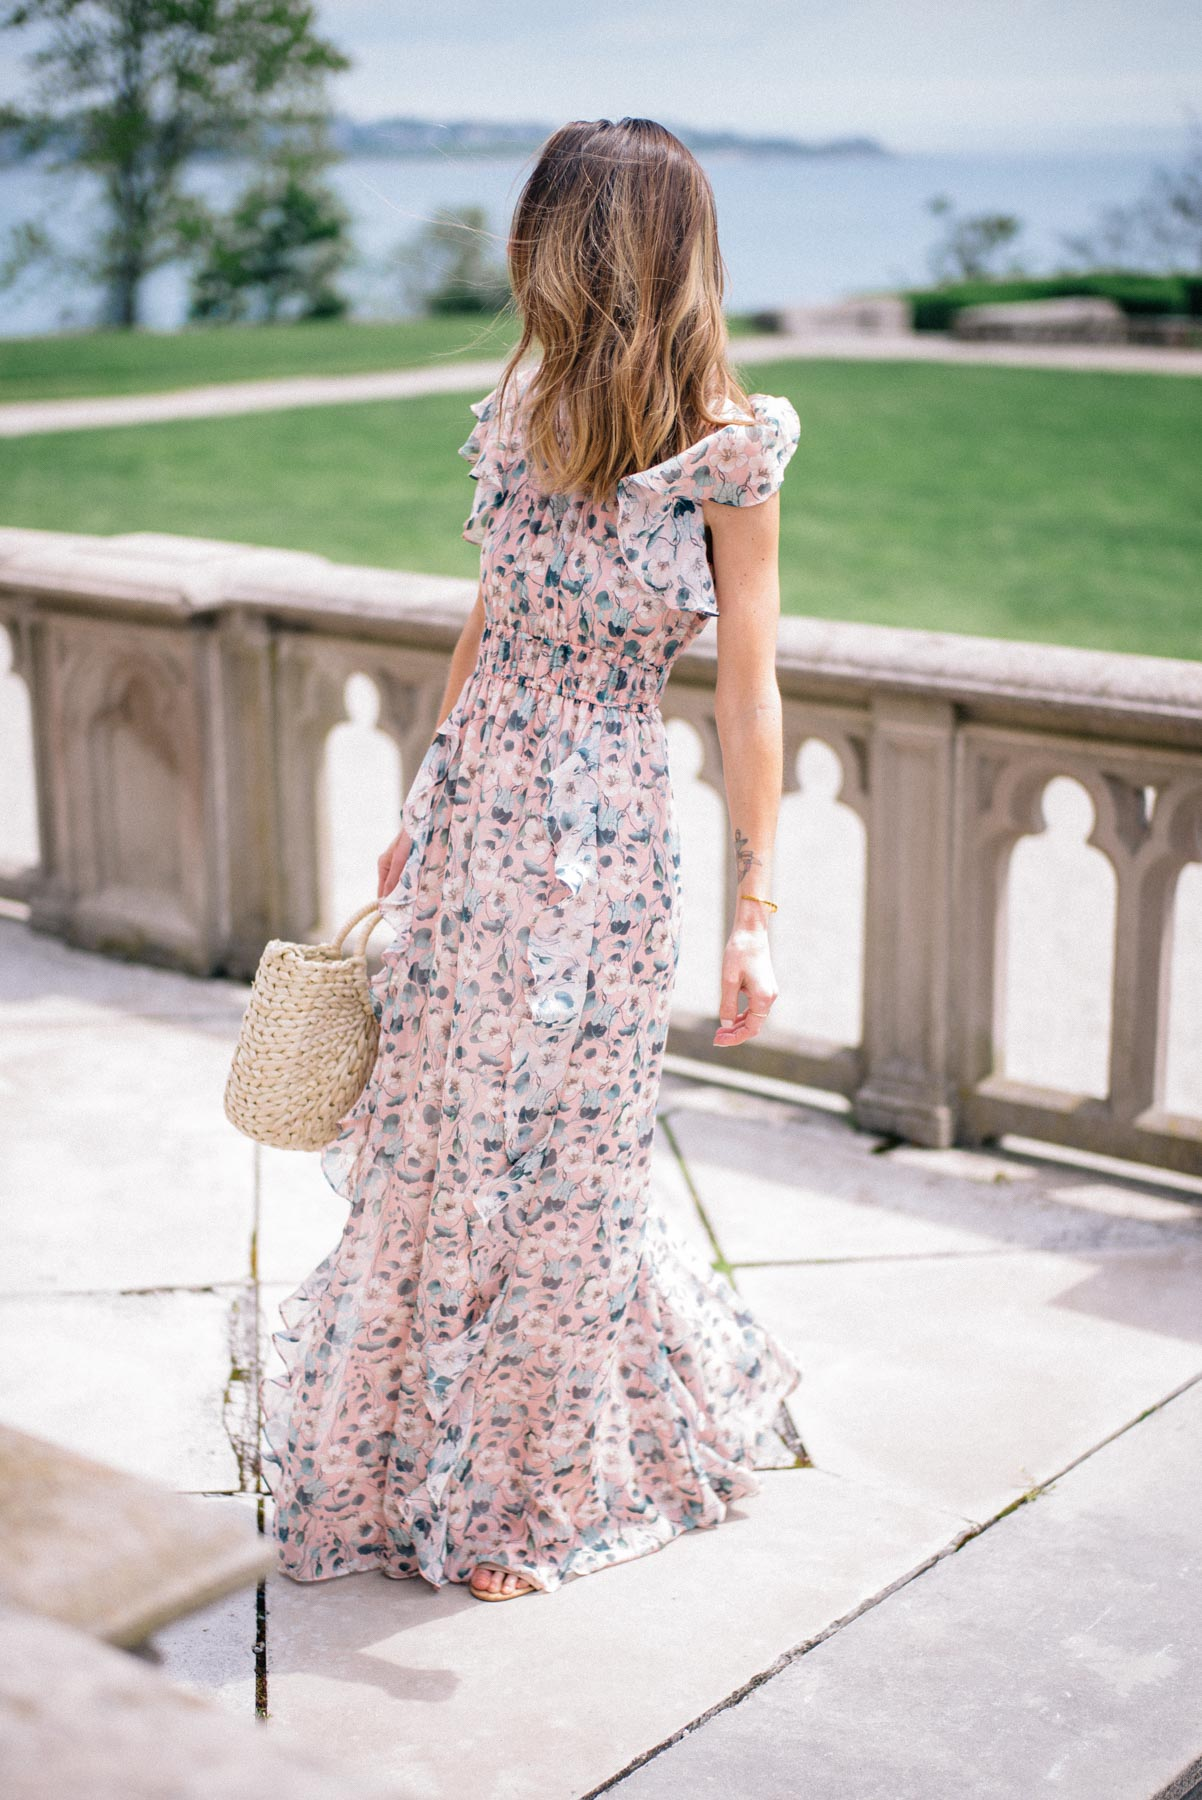 Jess Ann Kirby shares her summer wedding style including printed maxi dresses and straw accessories